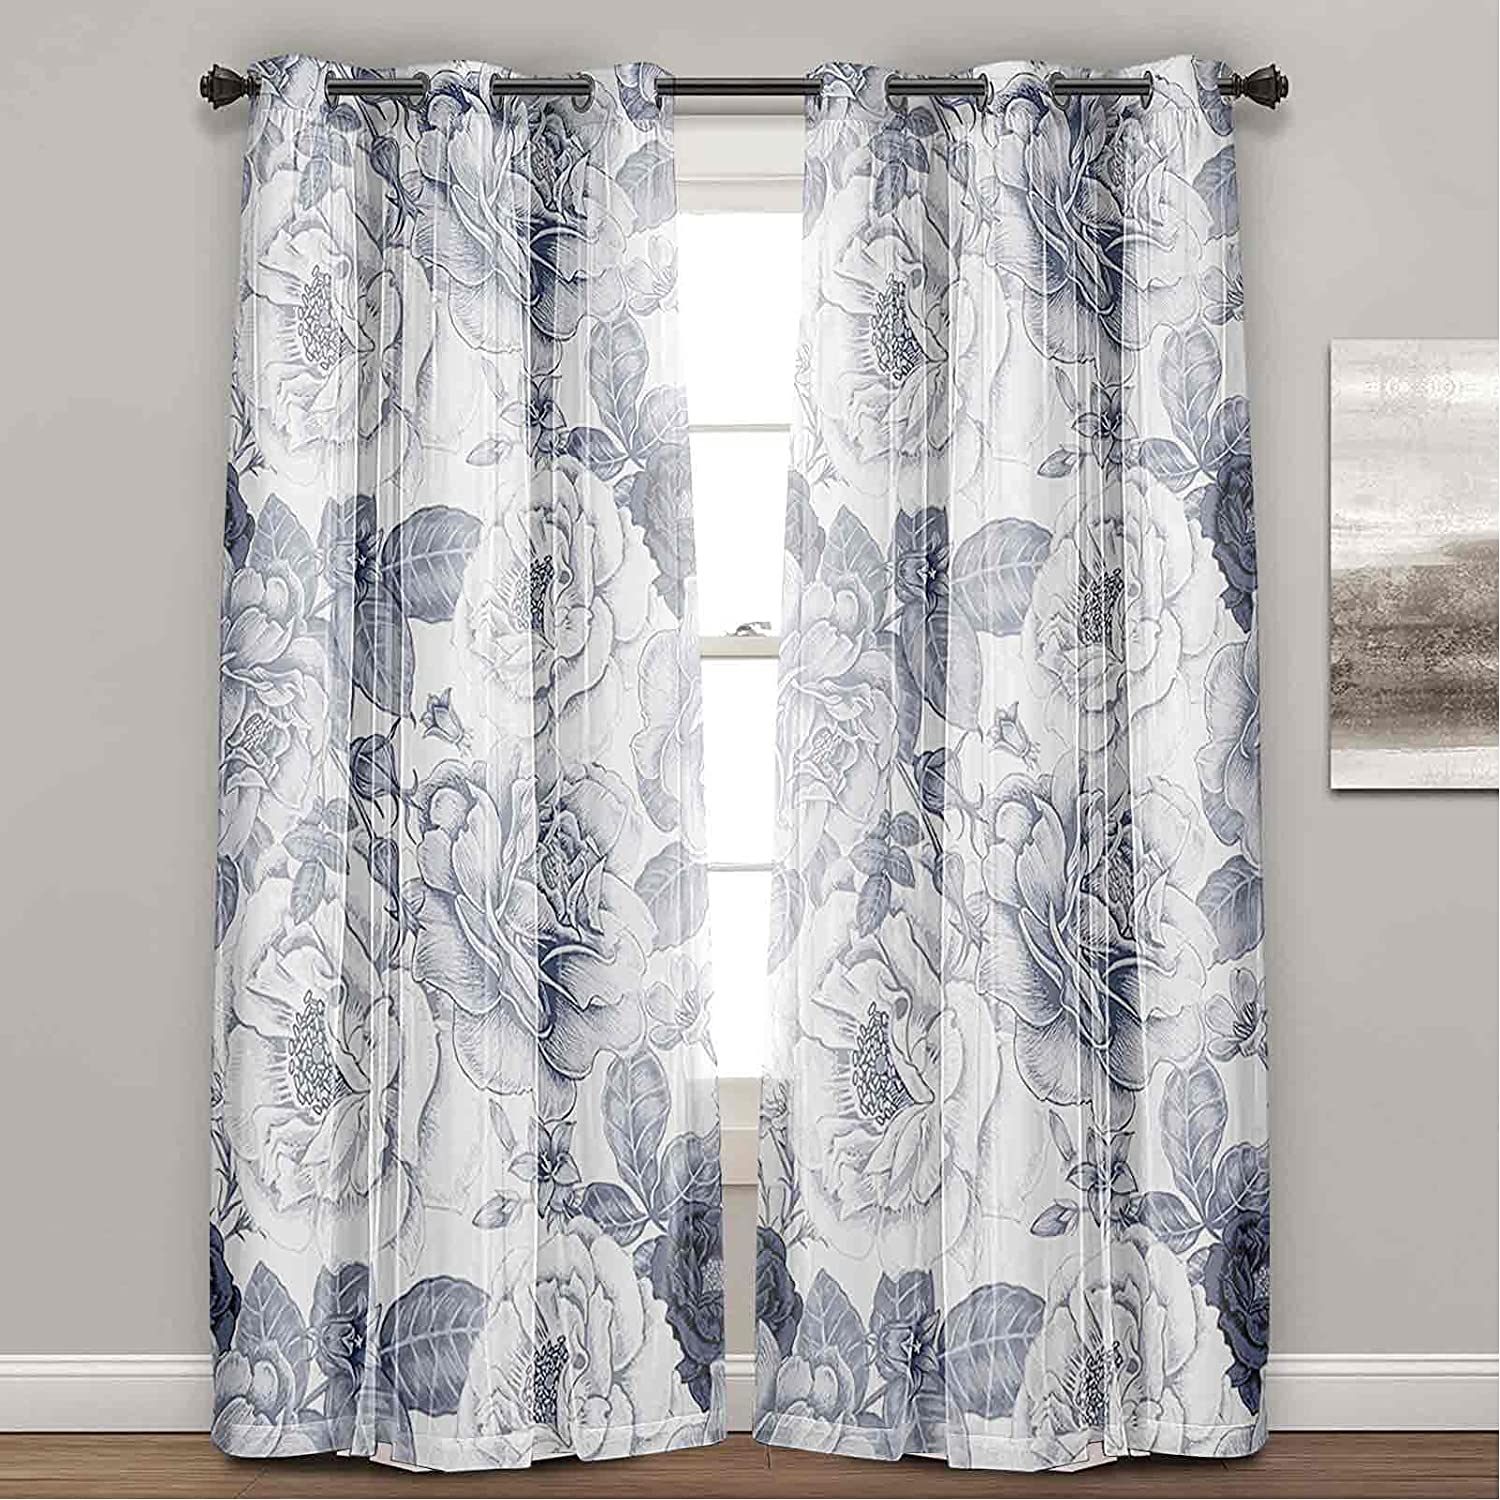 Light Blocking All items free shipping Curtains Garden Spring with Leaves Roses Buds Fl Outstanding